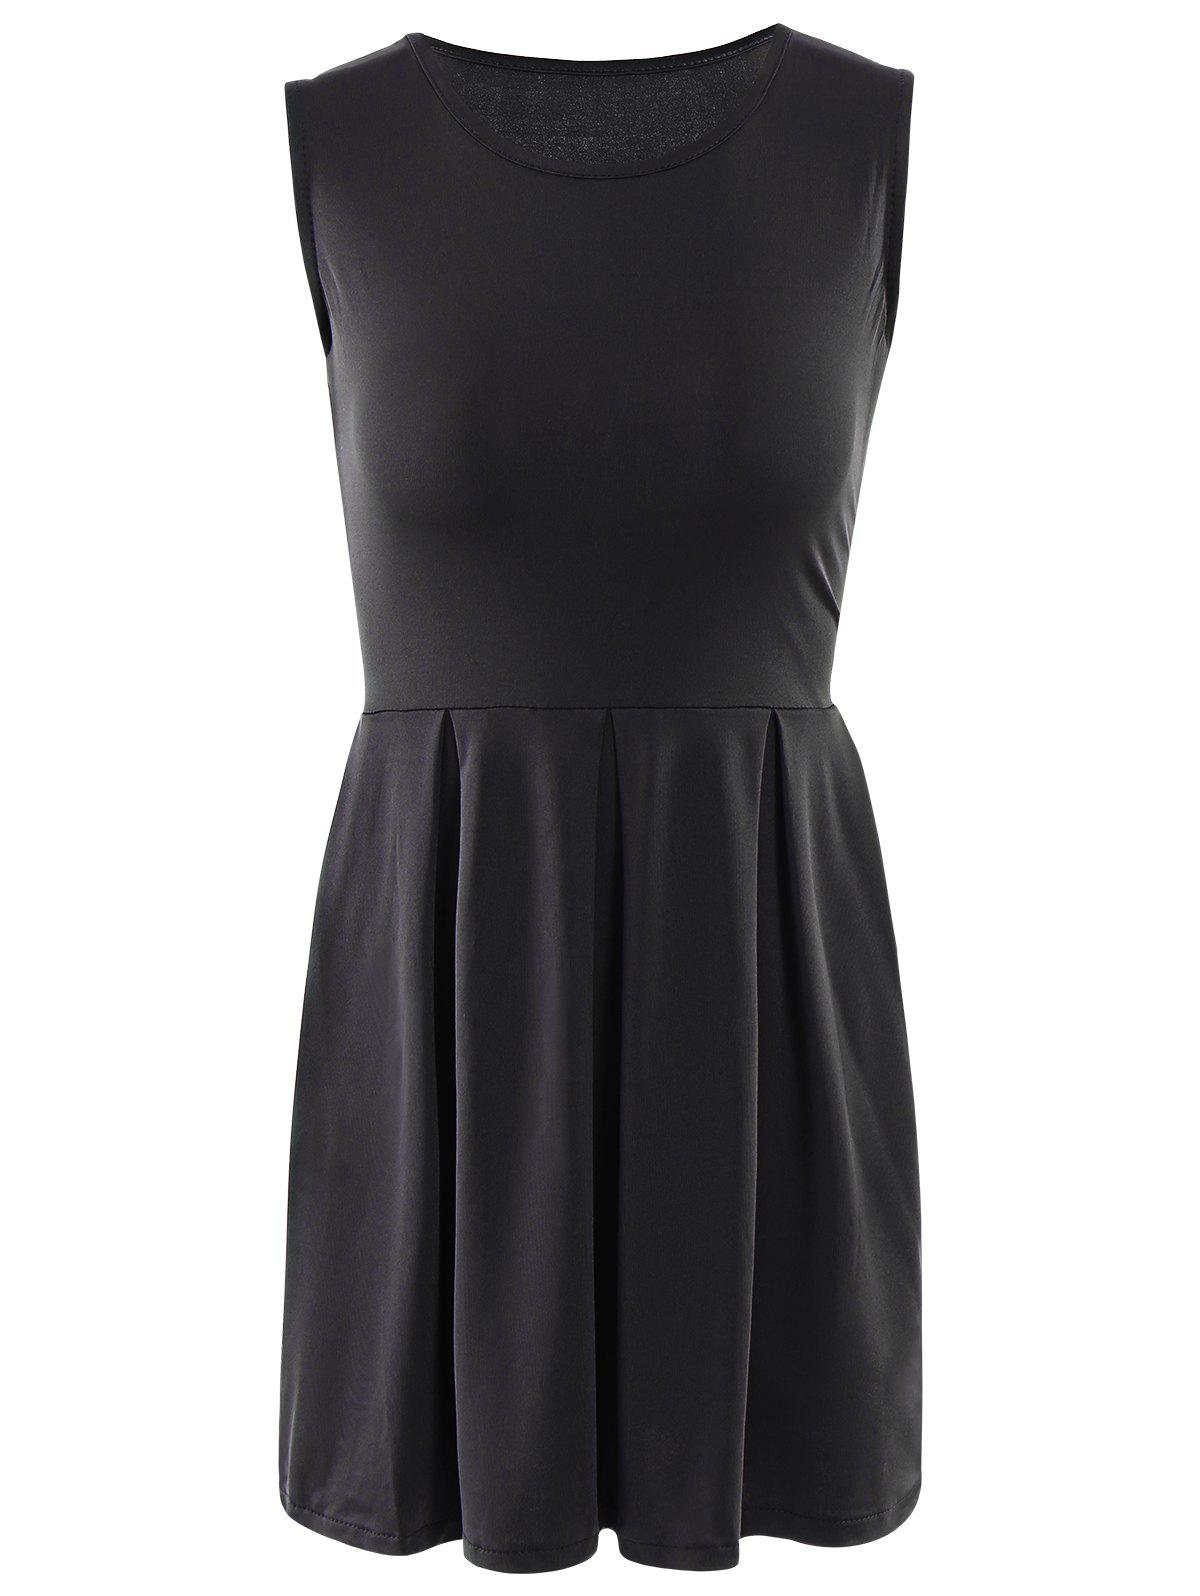 Sweet Solid Color Sleeveless Pleated Mini Dress For Women - BLACK S